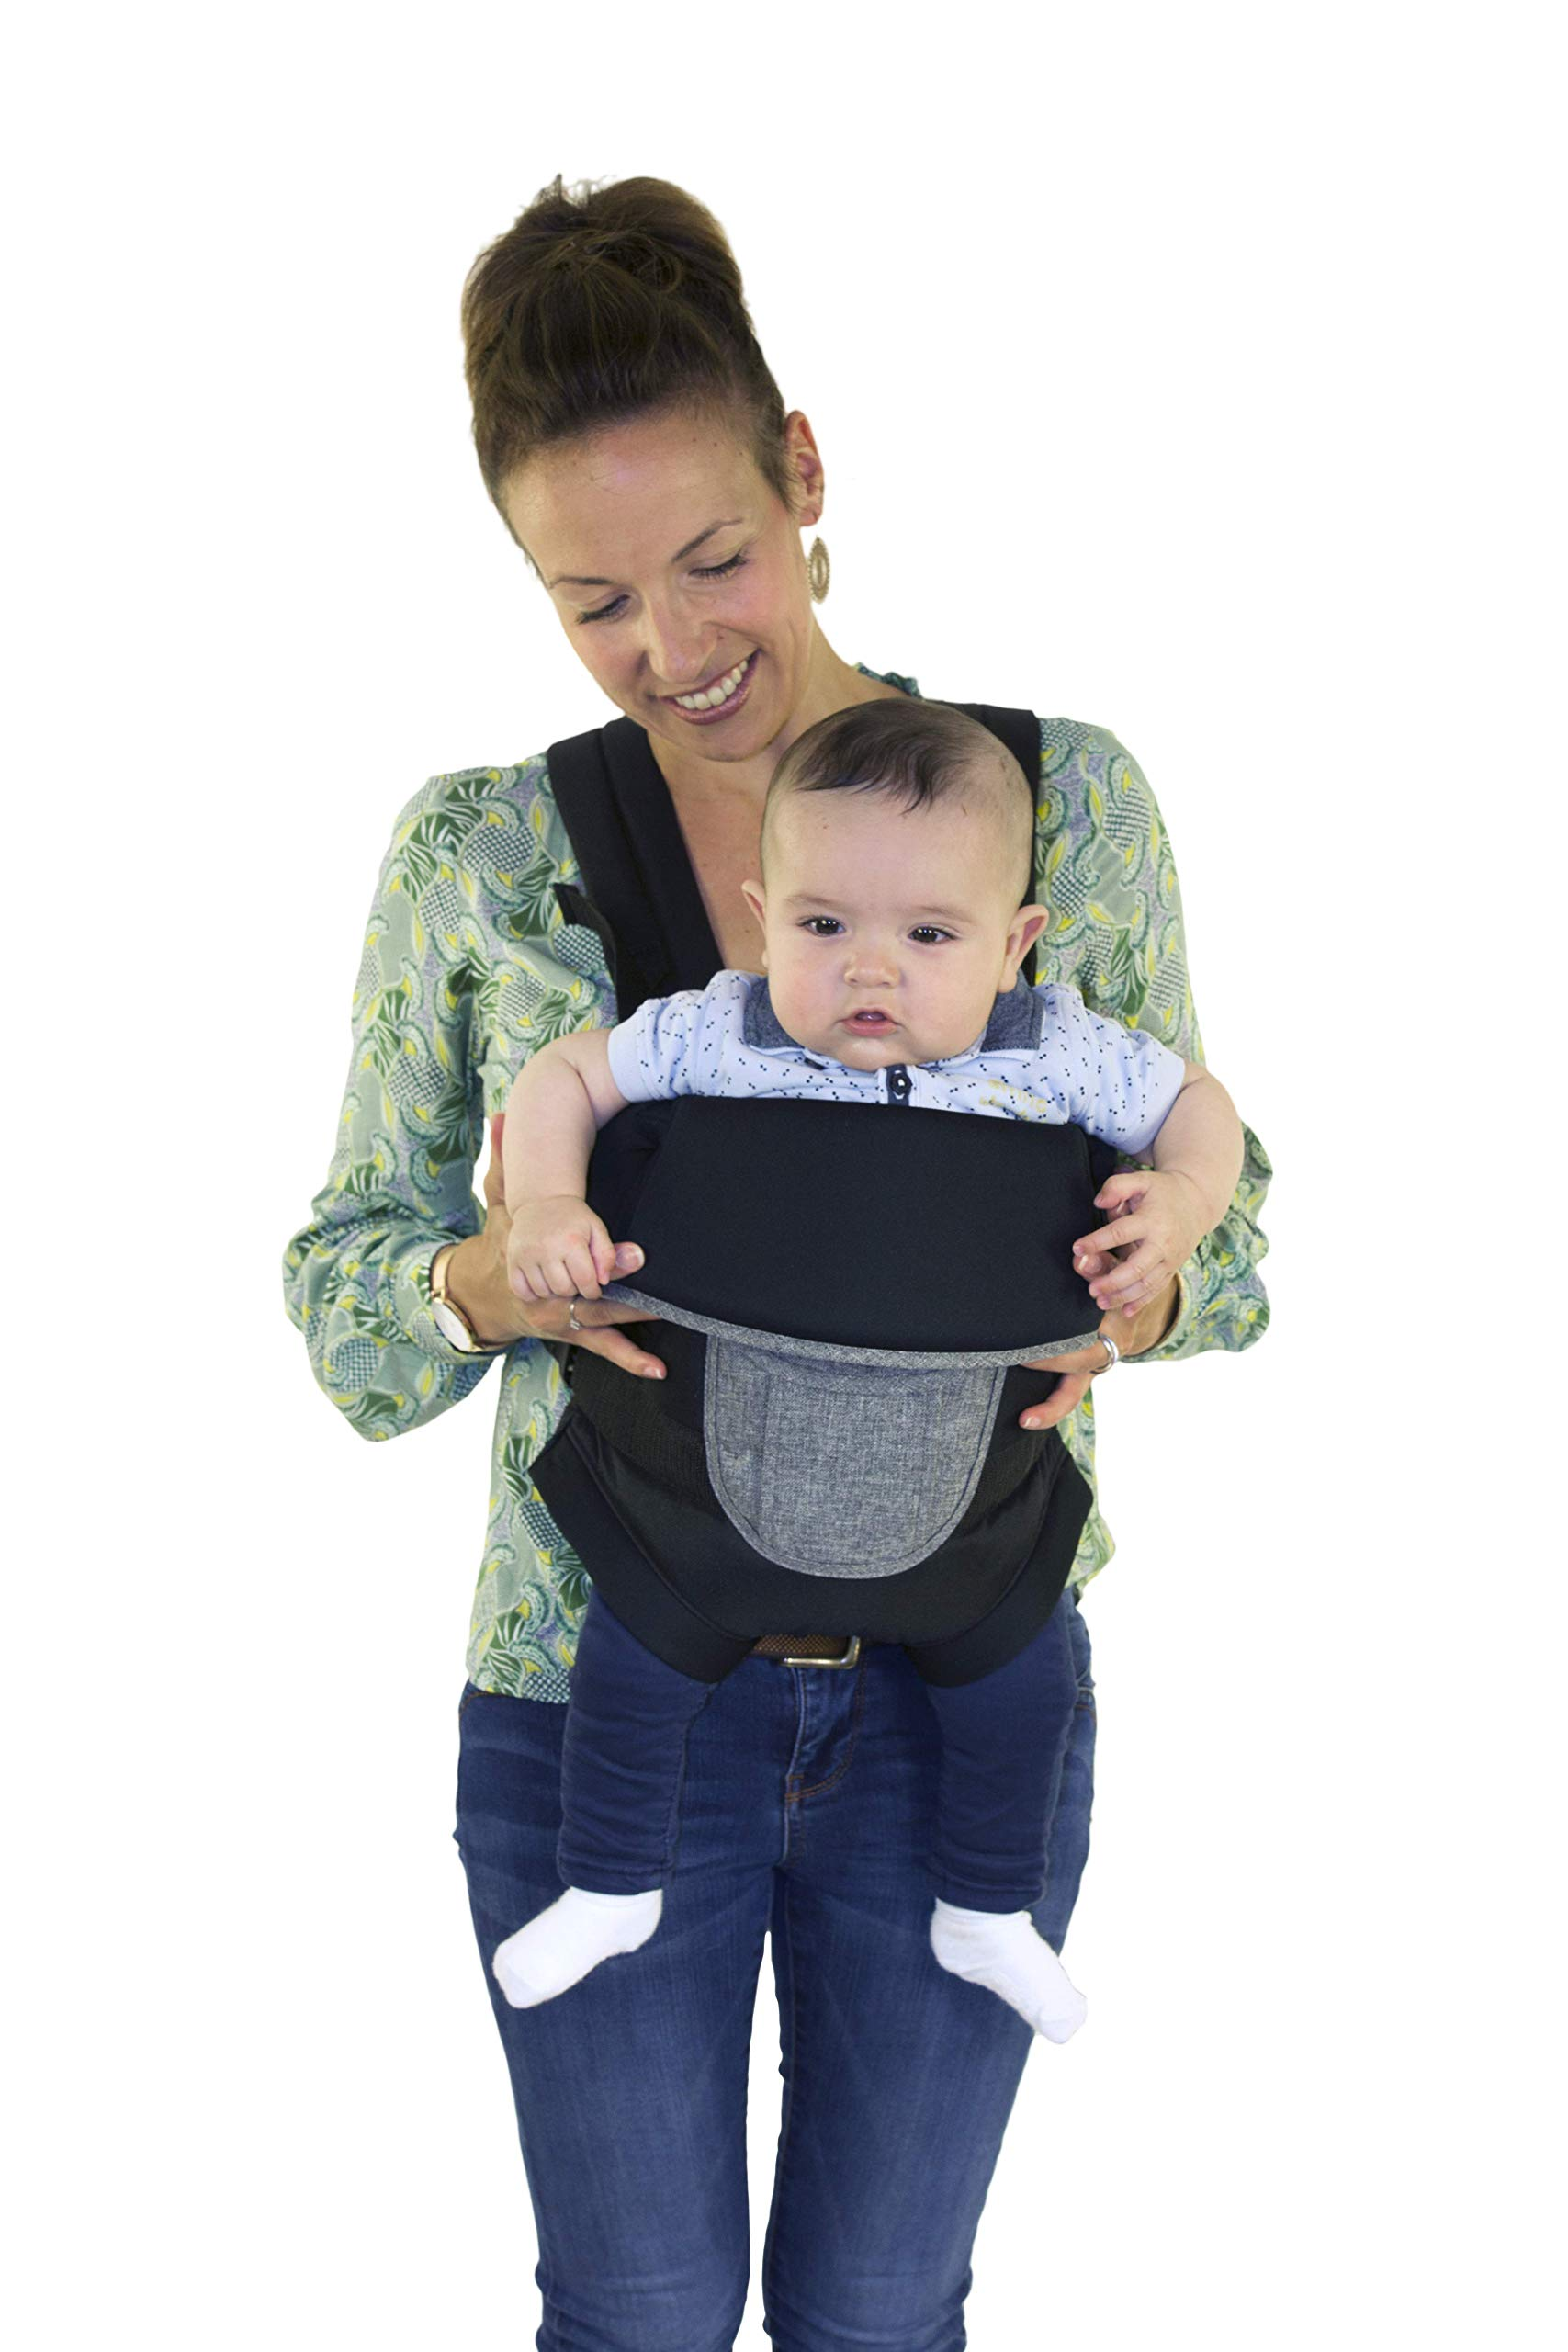 Safety 1st Youmi Baby Carrier, Black Chic Safety 1st 2 positions: parent facing and forward facing Comfortable and safe seat thanks to padding and reinforced back and head piece Safe and easy to install the baby thanks to the zippered opening 3